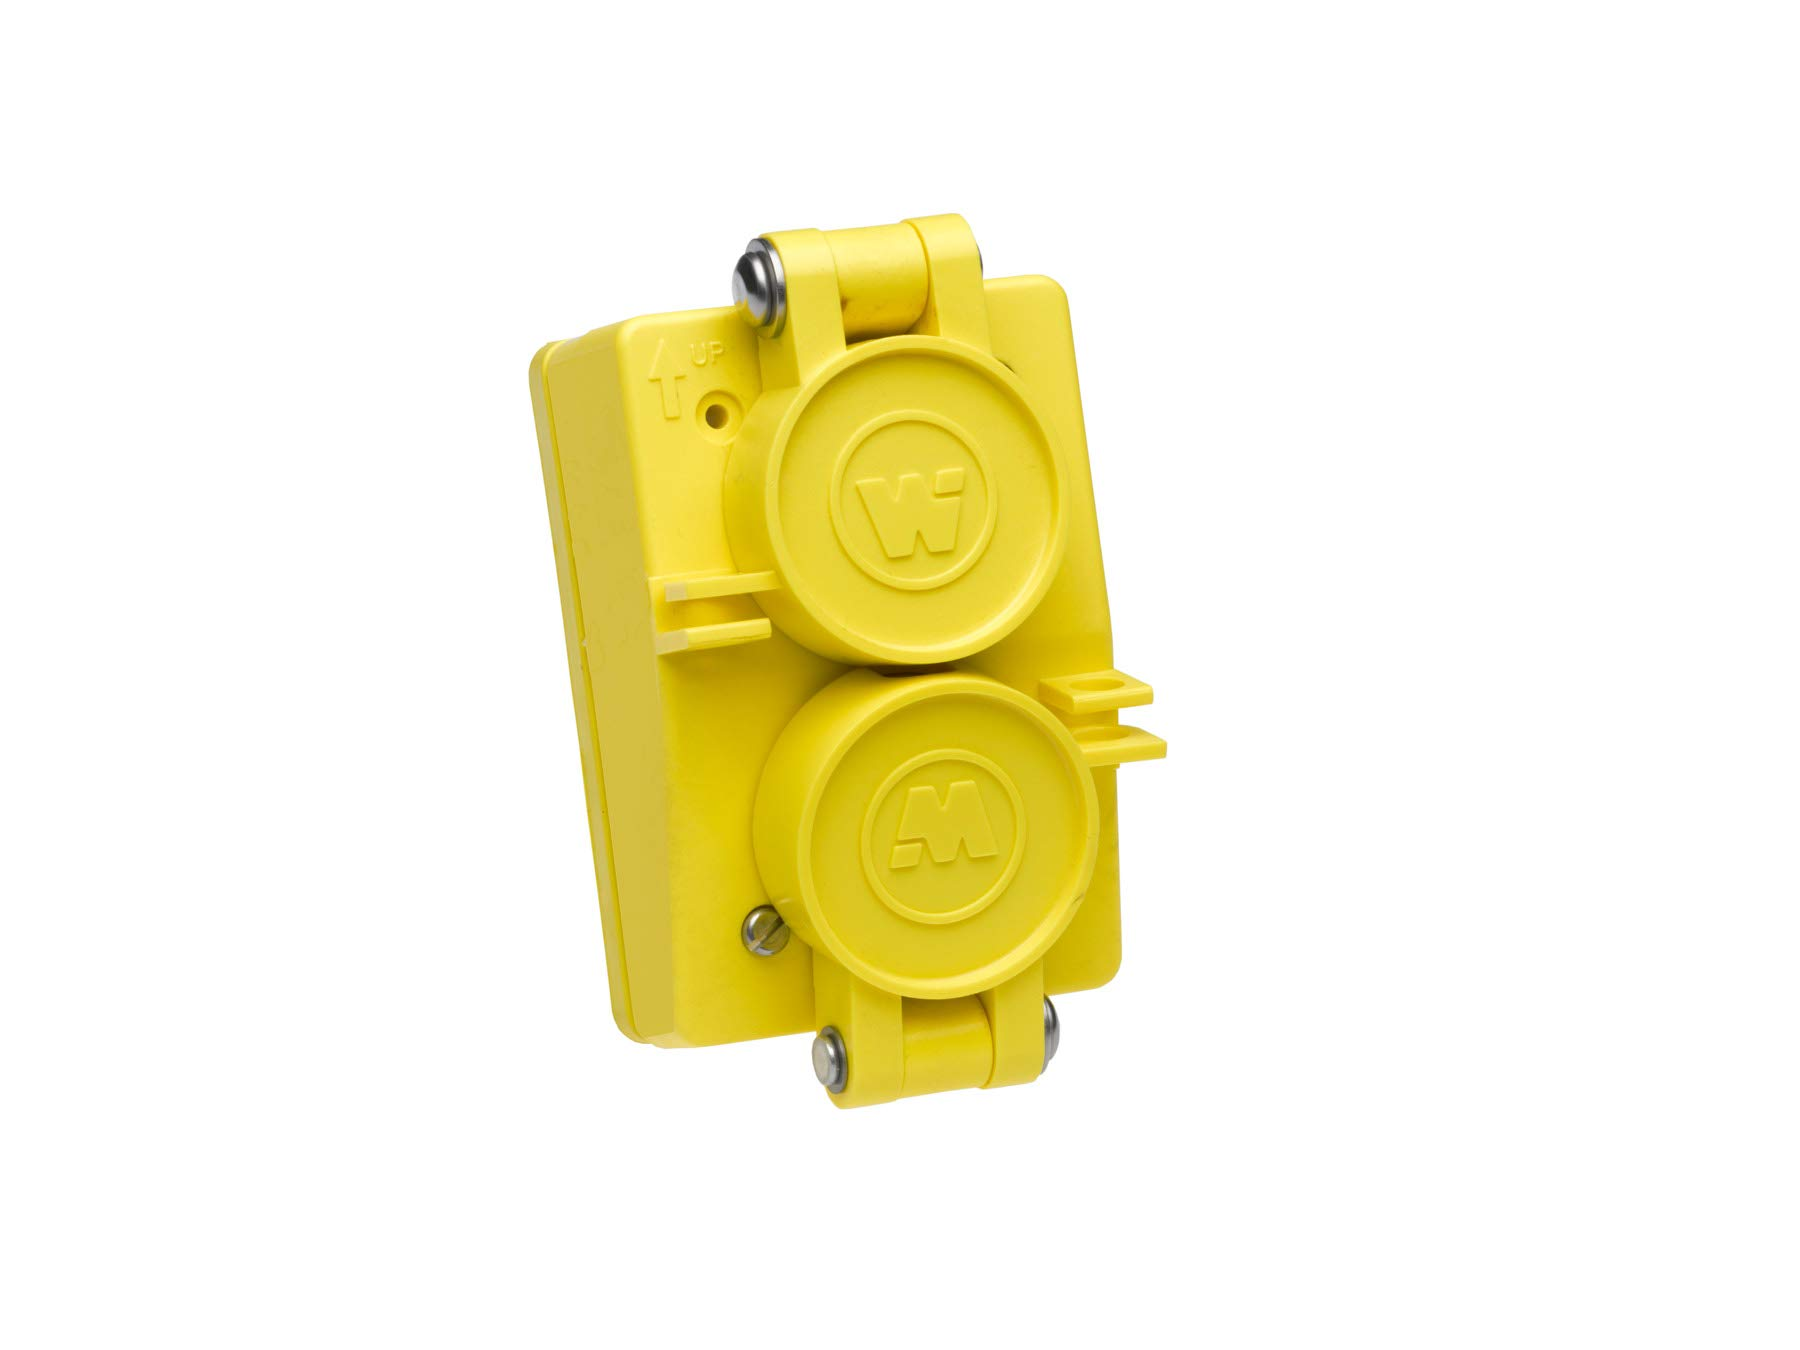 Woodhead 60W07DPLX Watertite Wet Location Straight Blade Receptacle, Duplex Flip Lid, Female, 3 Wires, 3 Poles, Yellow, 25A 125V / 10A 250V Rating